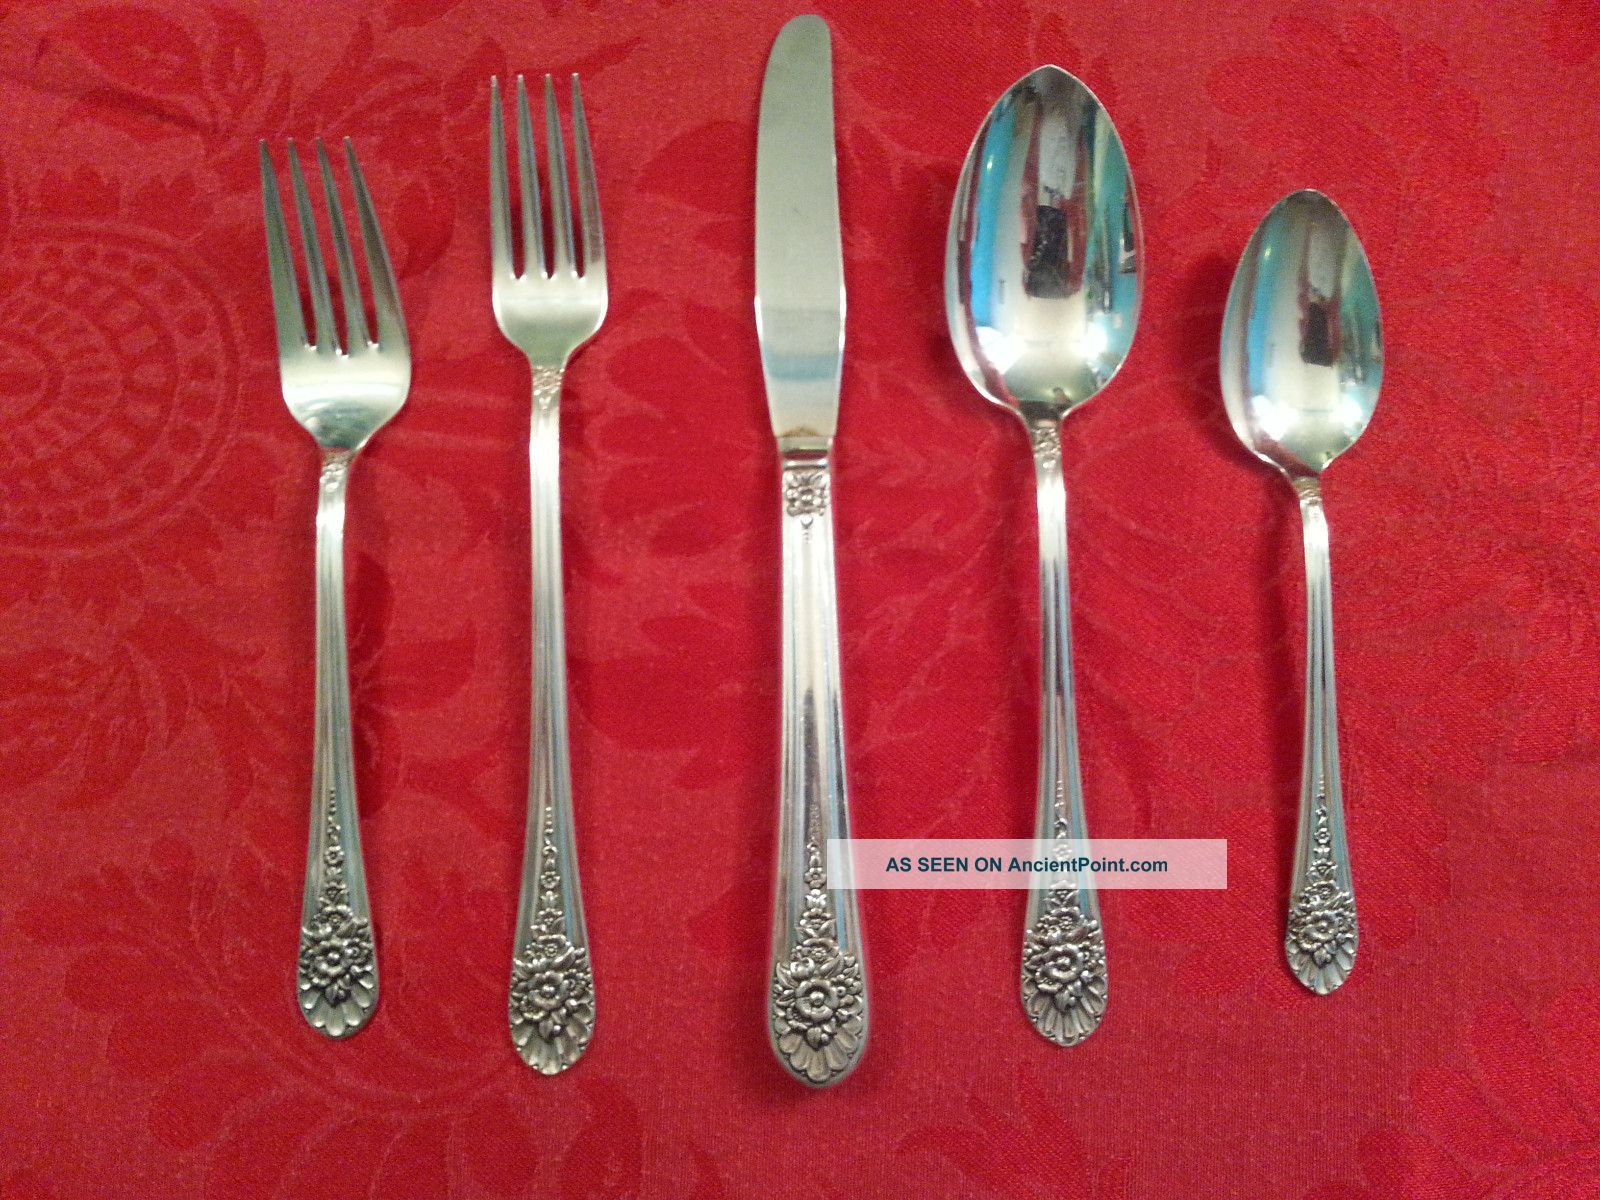 Wm Rogers/international Silver Jubilee 5 Piece Place Setting 1953 Silverplate Other photo